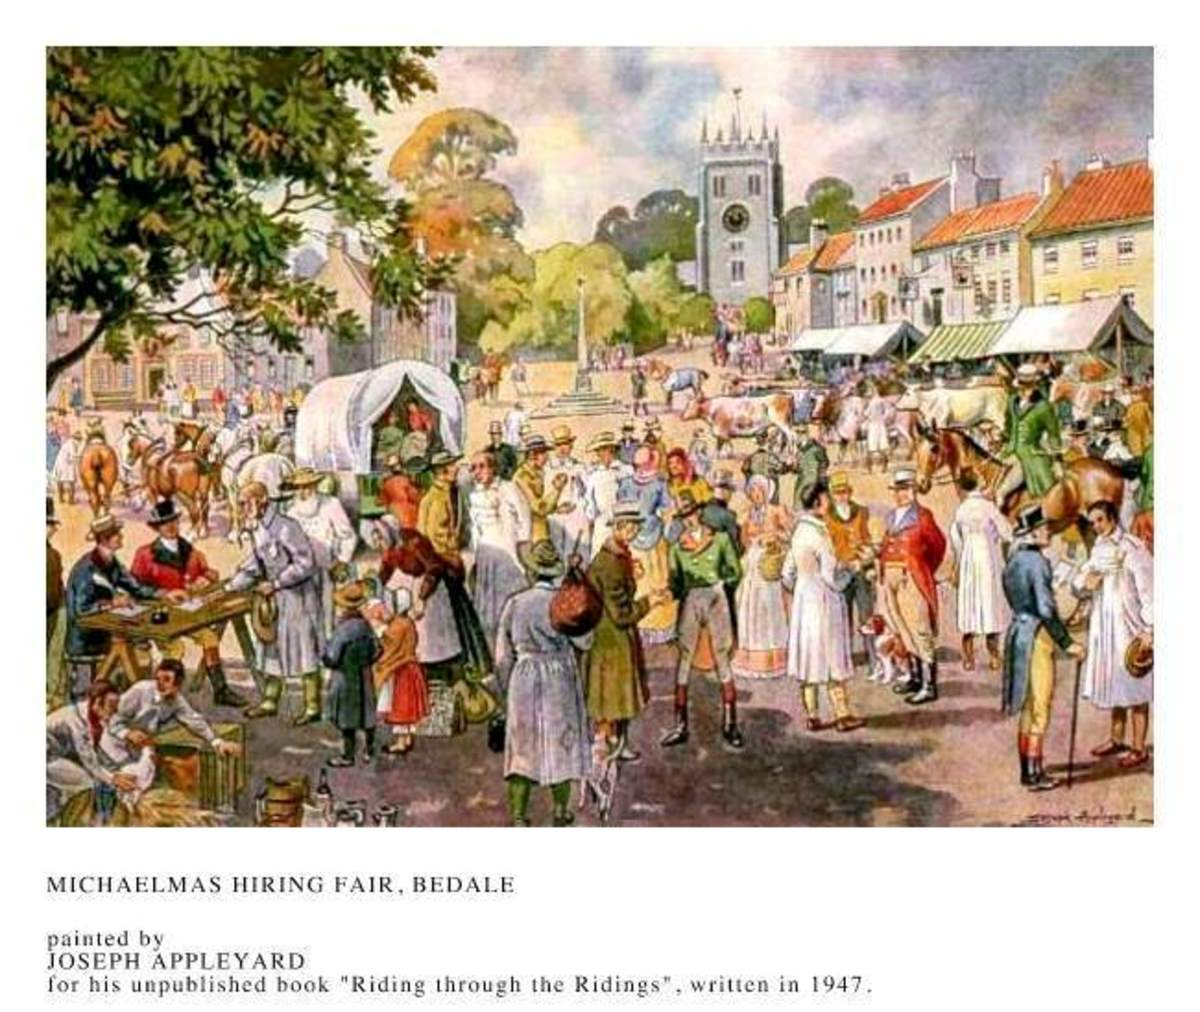 Bedale Michaelmas Hiring Fair by Joseph Appleyard (early 19th Century) - these hiring fairs occurred regularly with the ebb and flow of the seasons